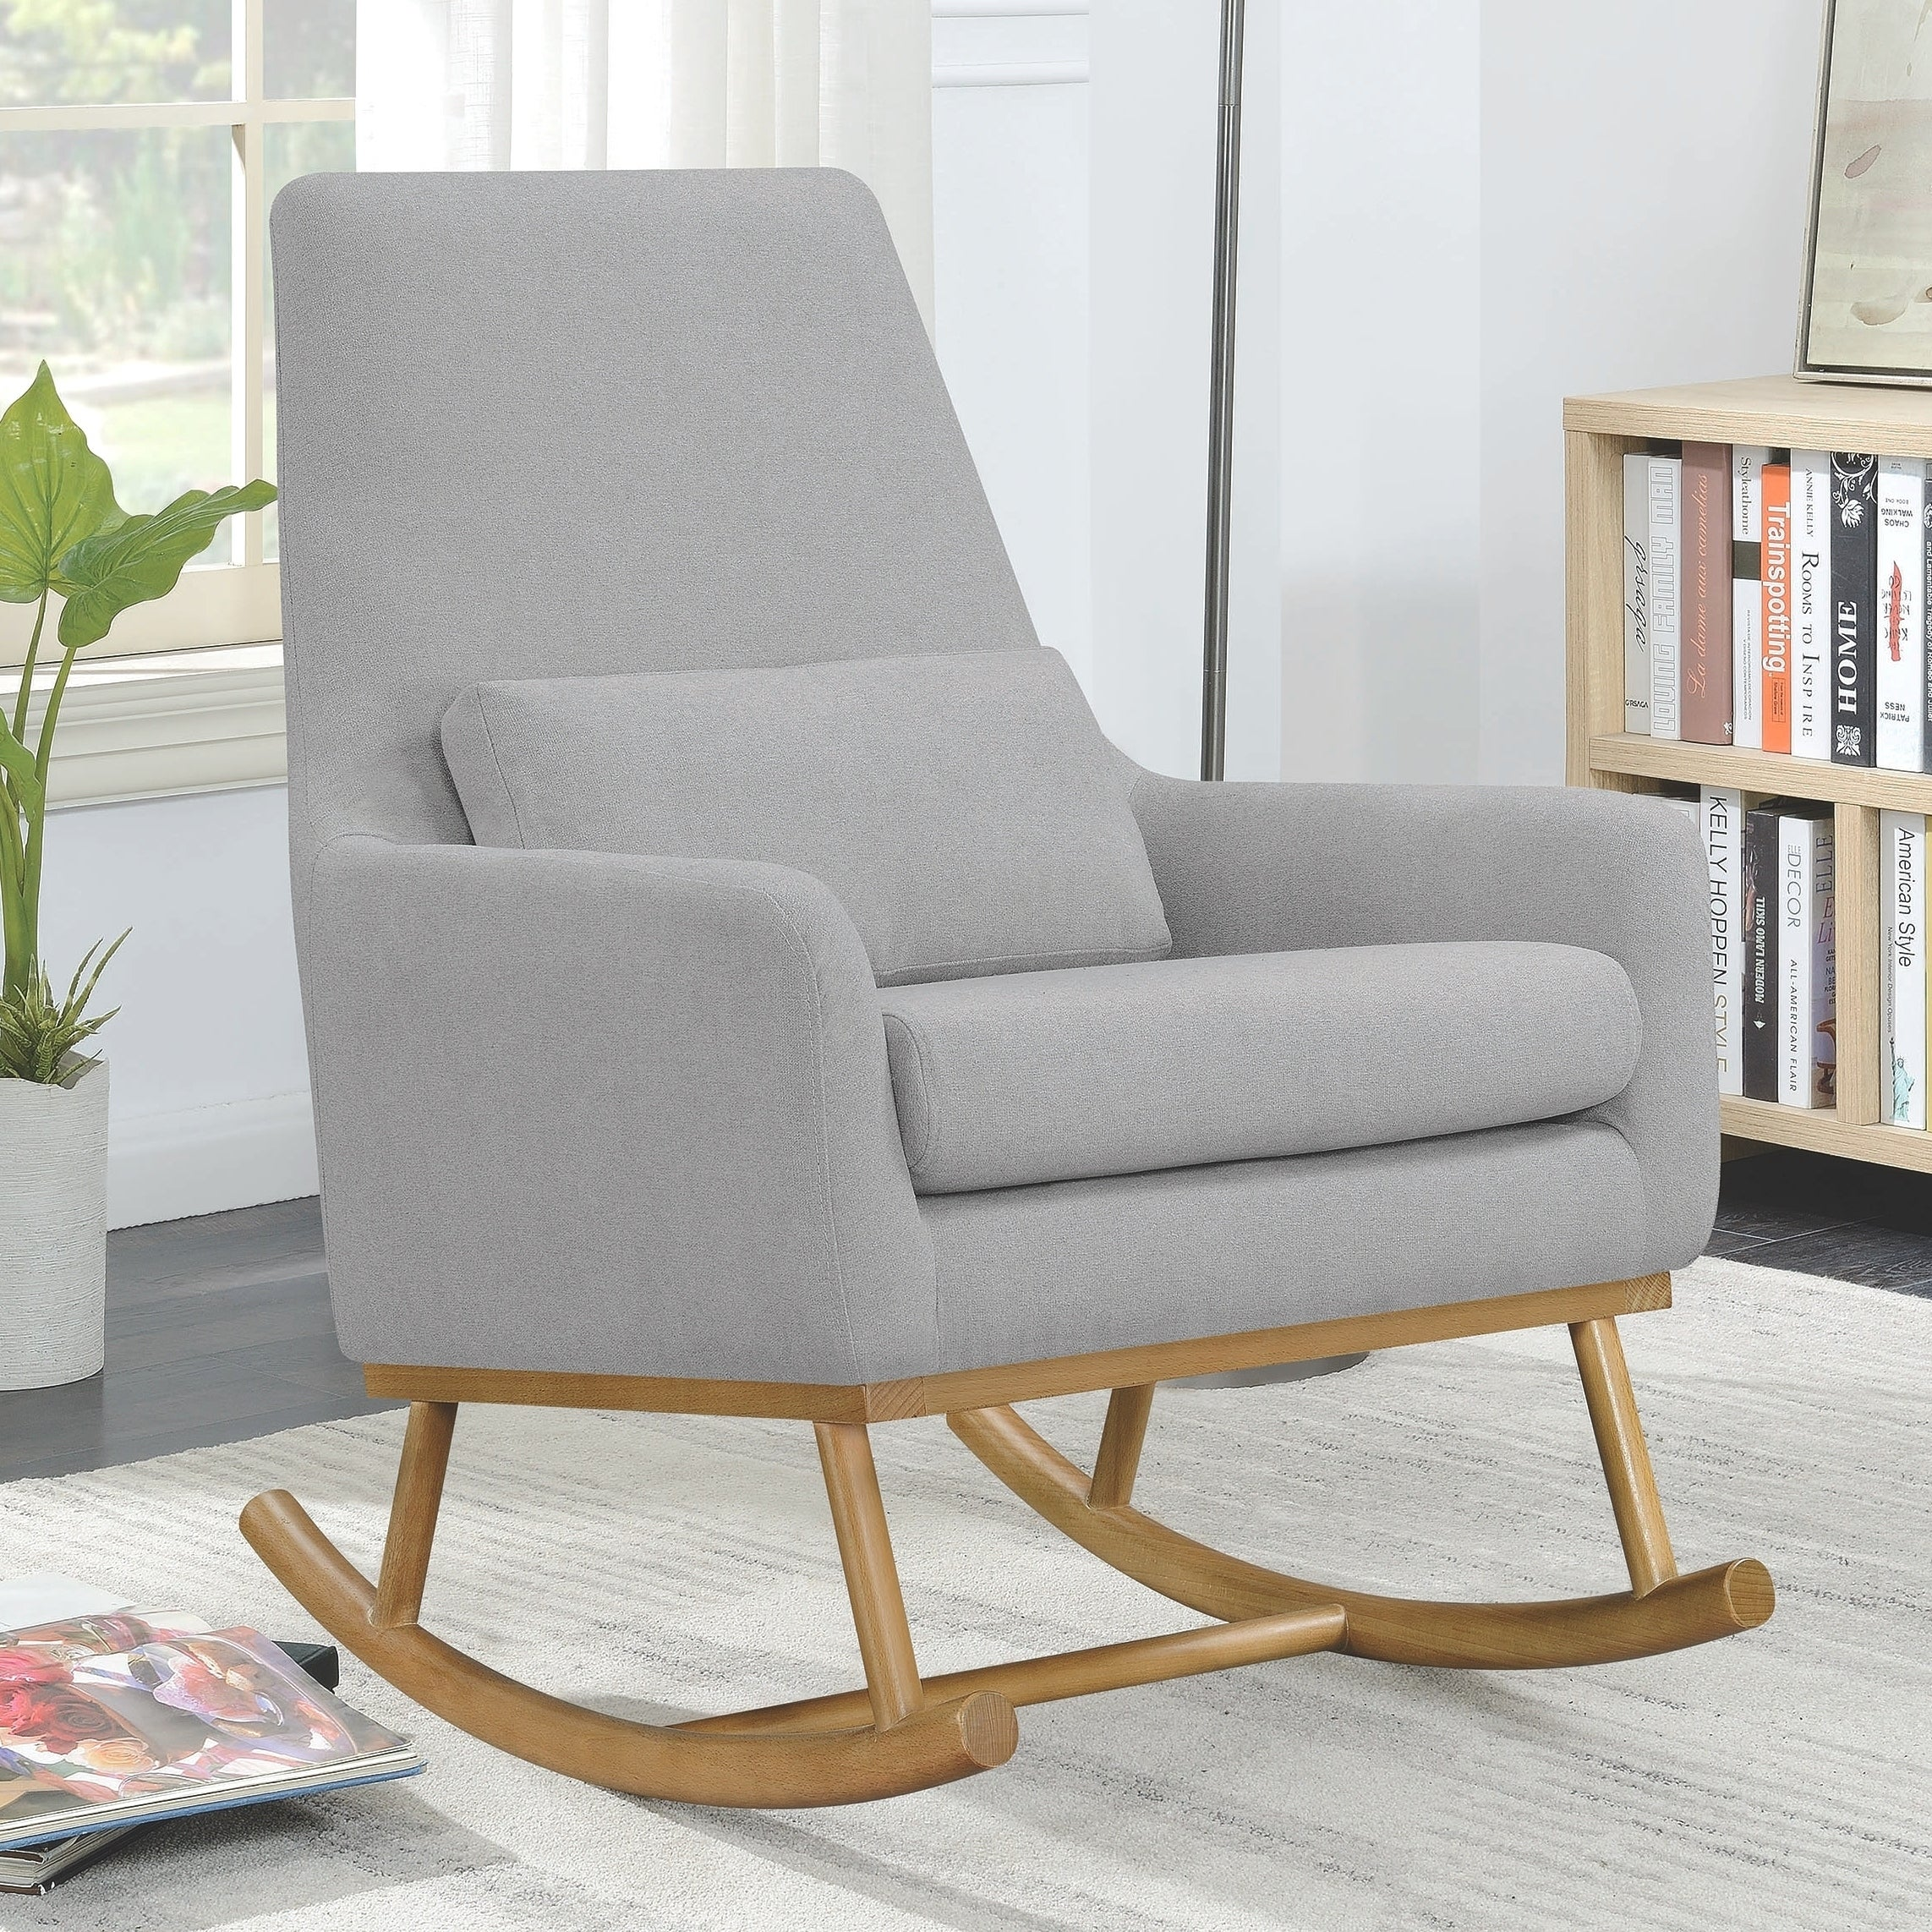 Grey Upholstered Mid Century Contemporary Design Rocking Chair